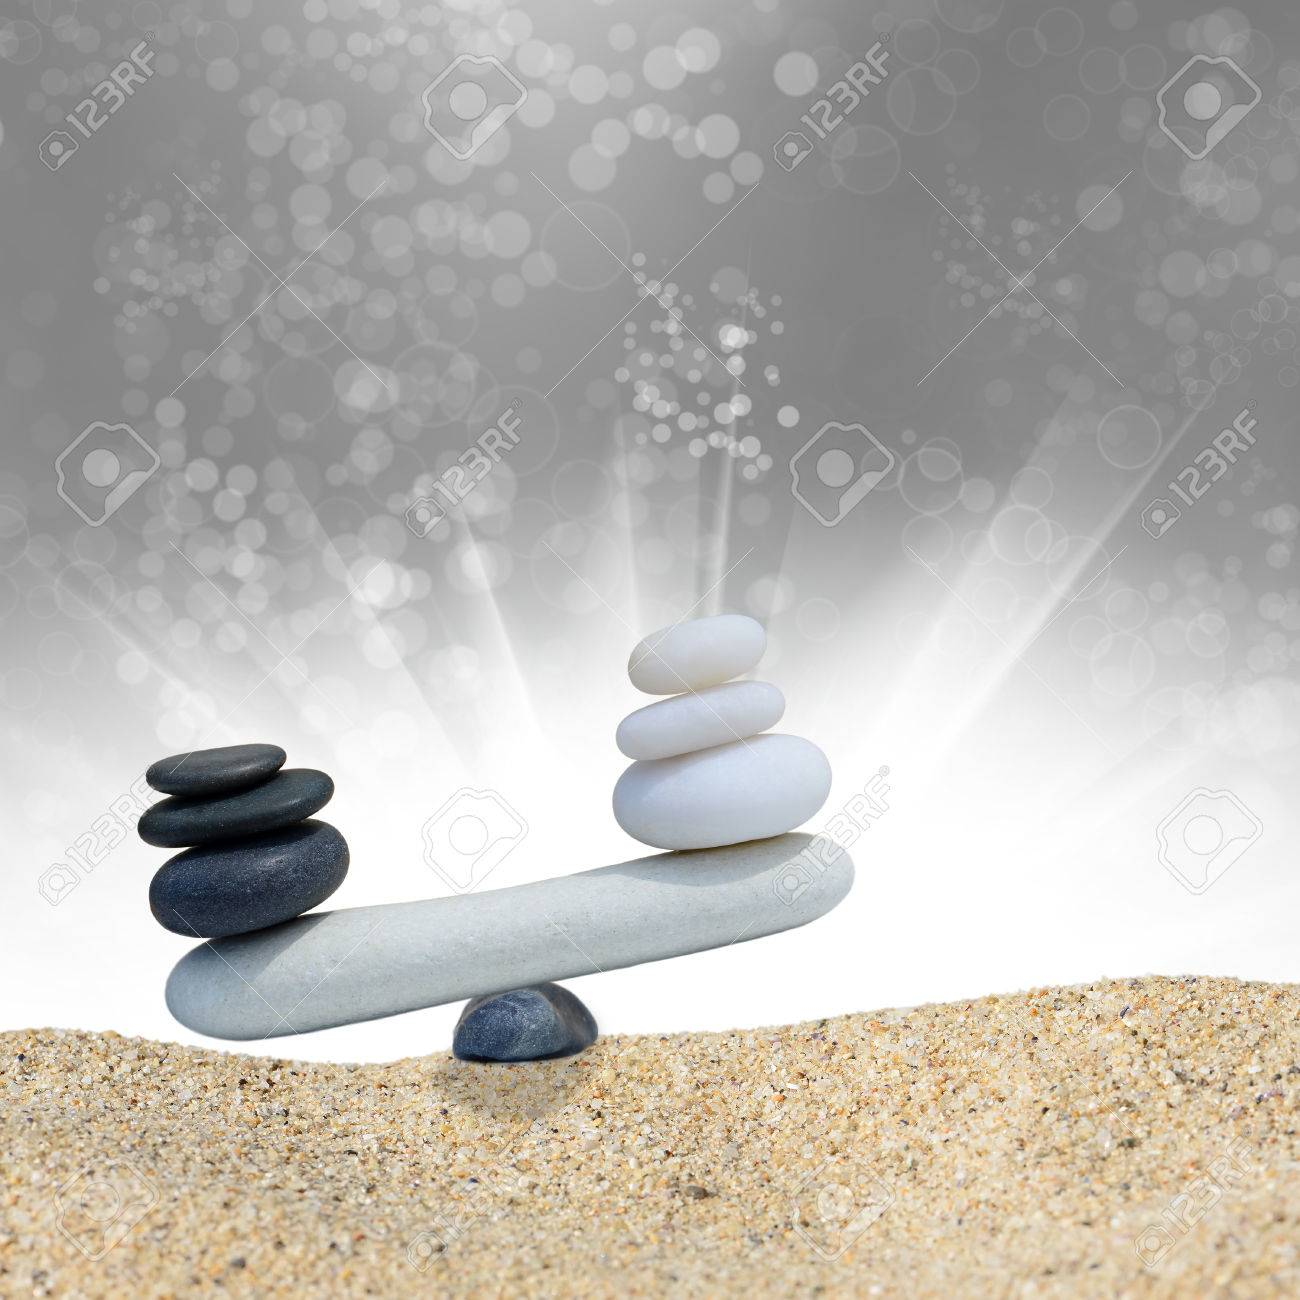 Zen Stones Balance Concept The Balance Between Black And White